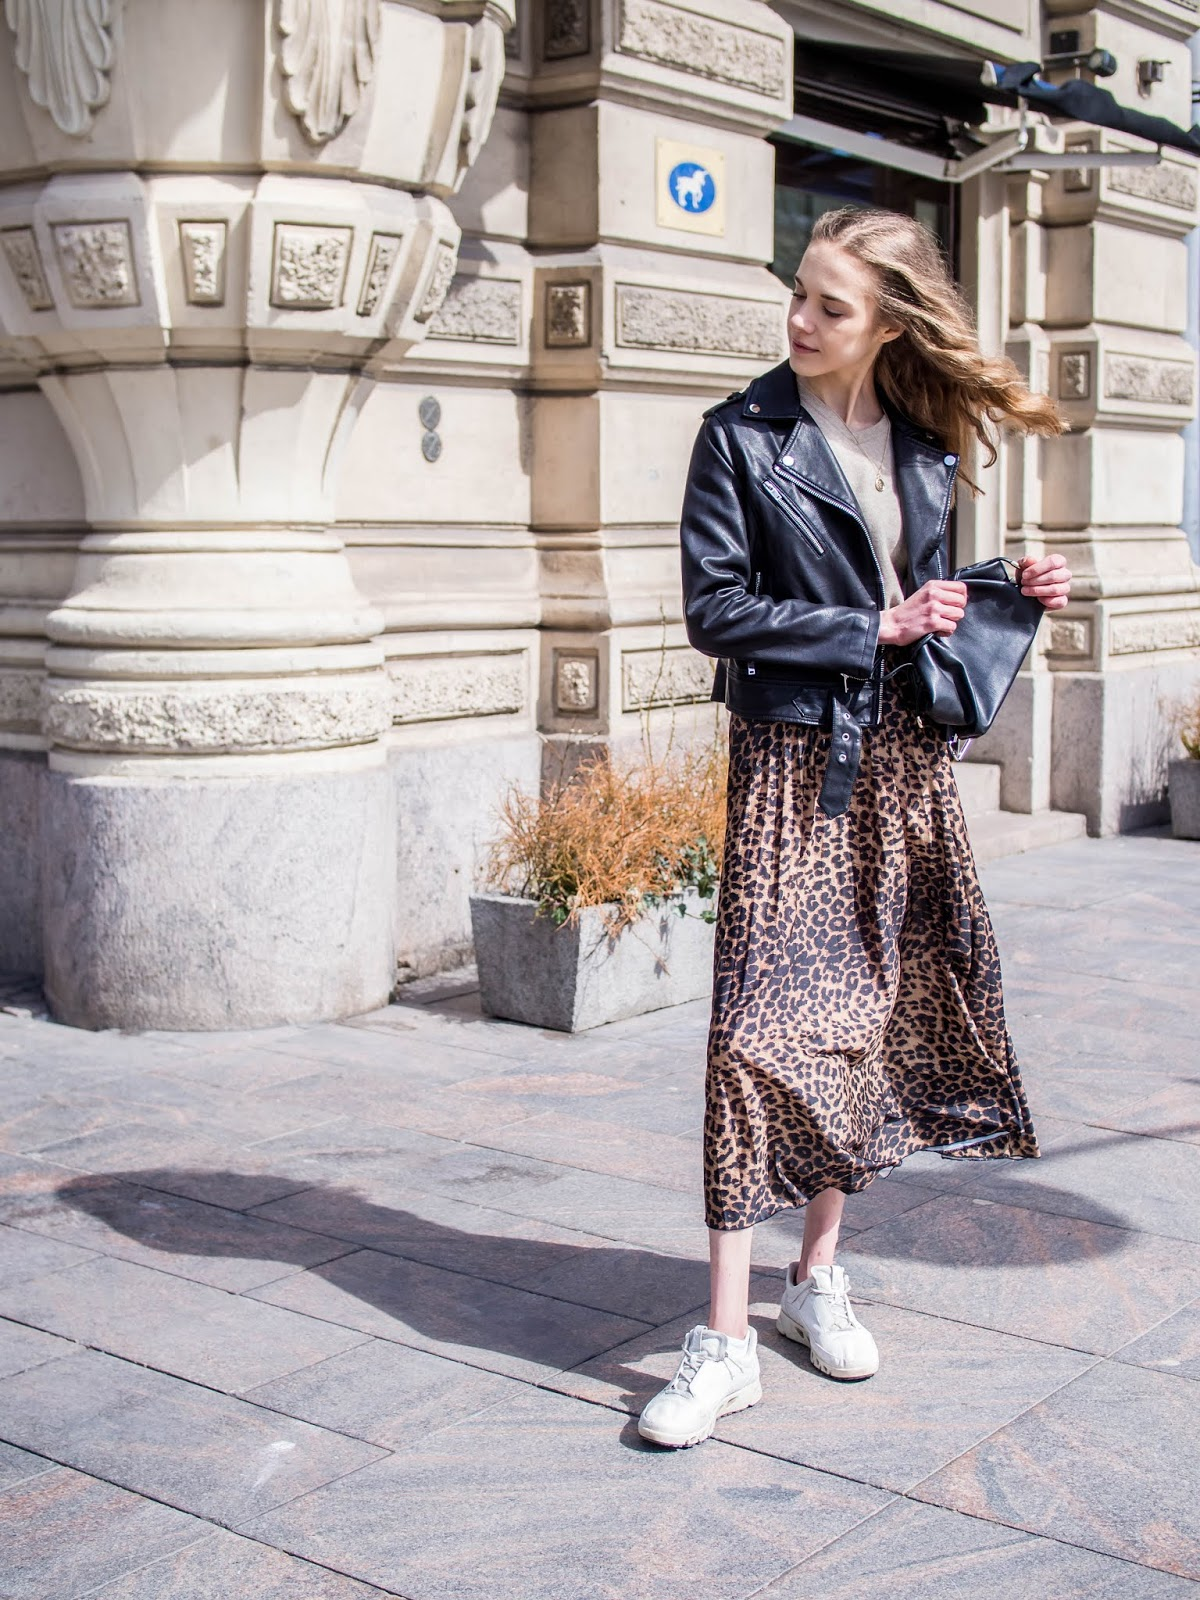 Spring outfit inspiration with leopard print midi skirt - Kevätmuoti, asuinspiraatio, leopardihame